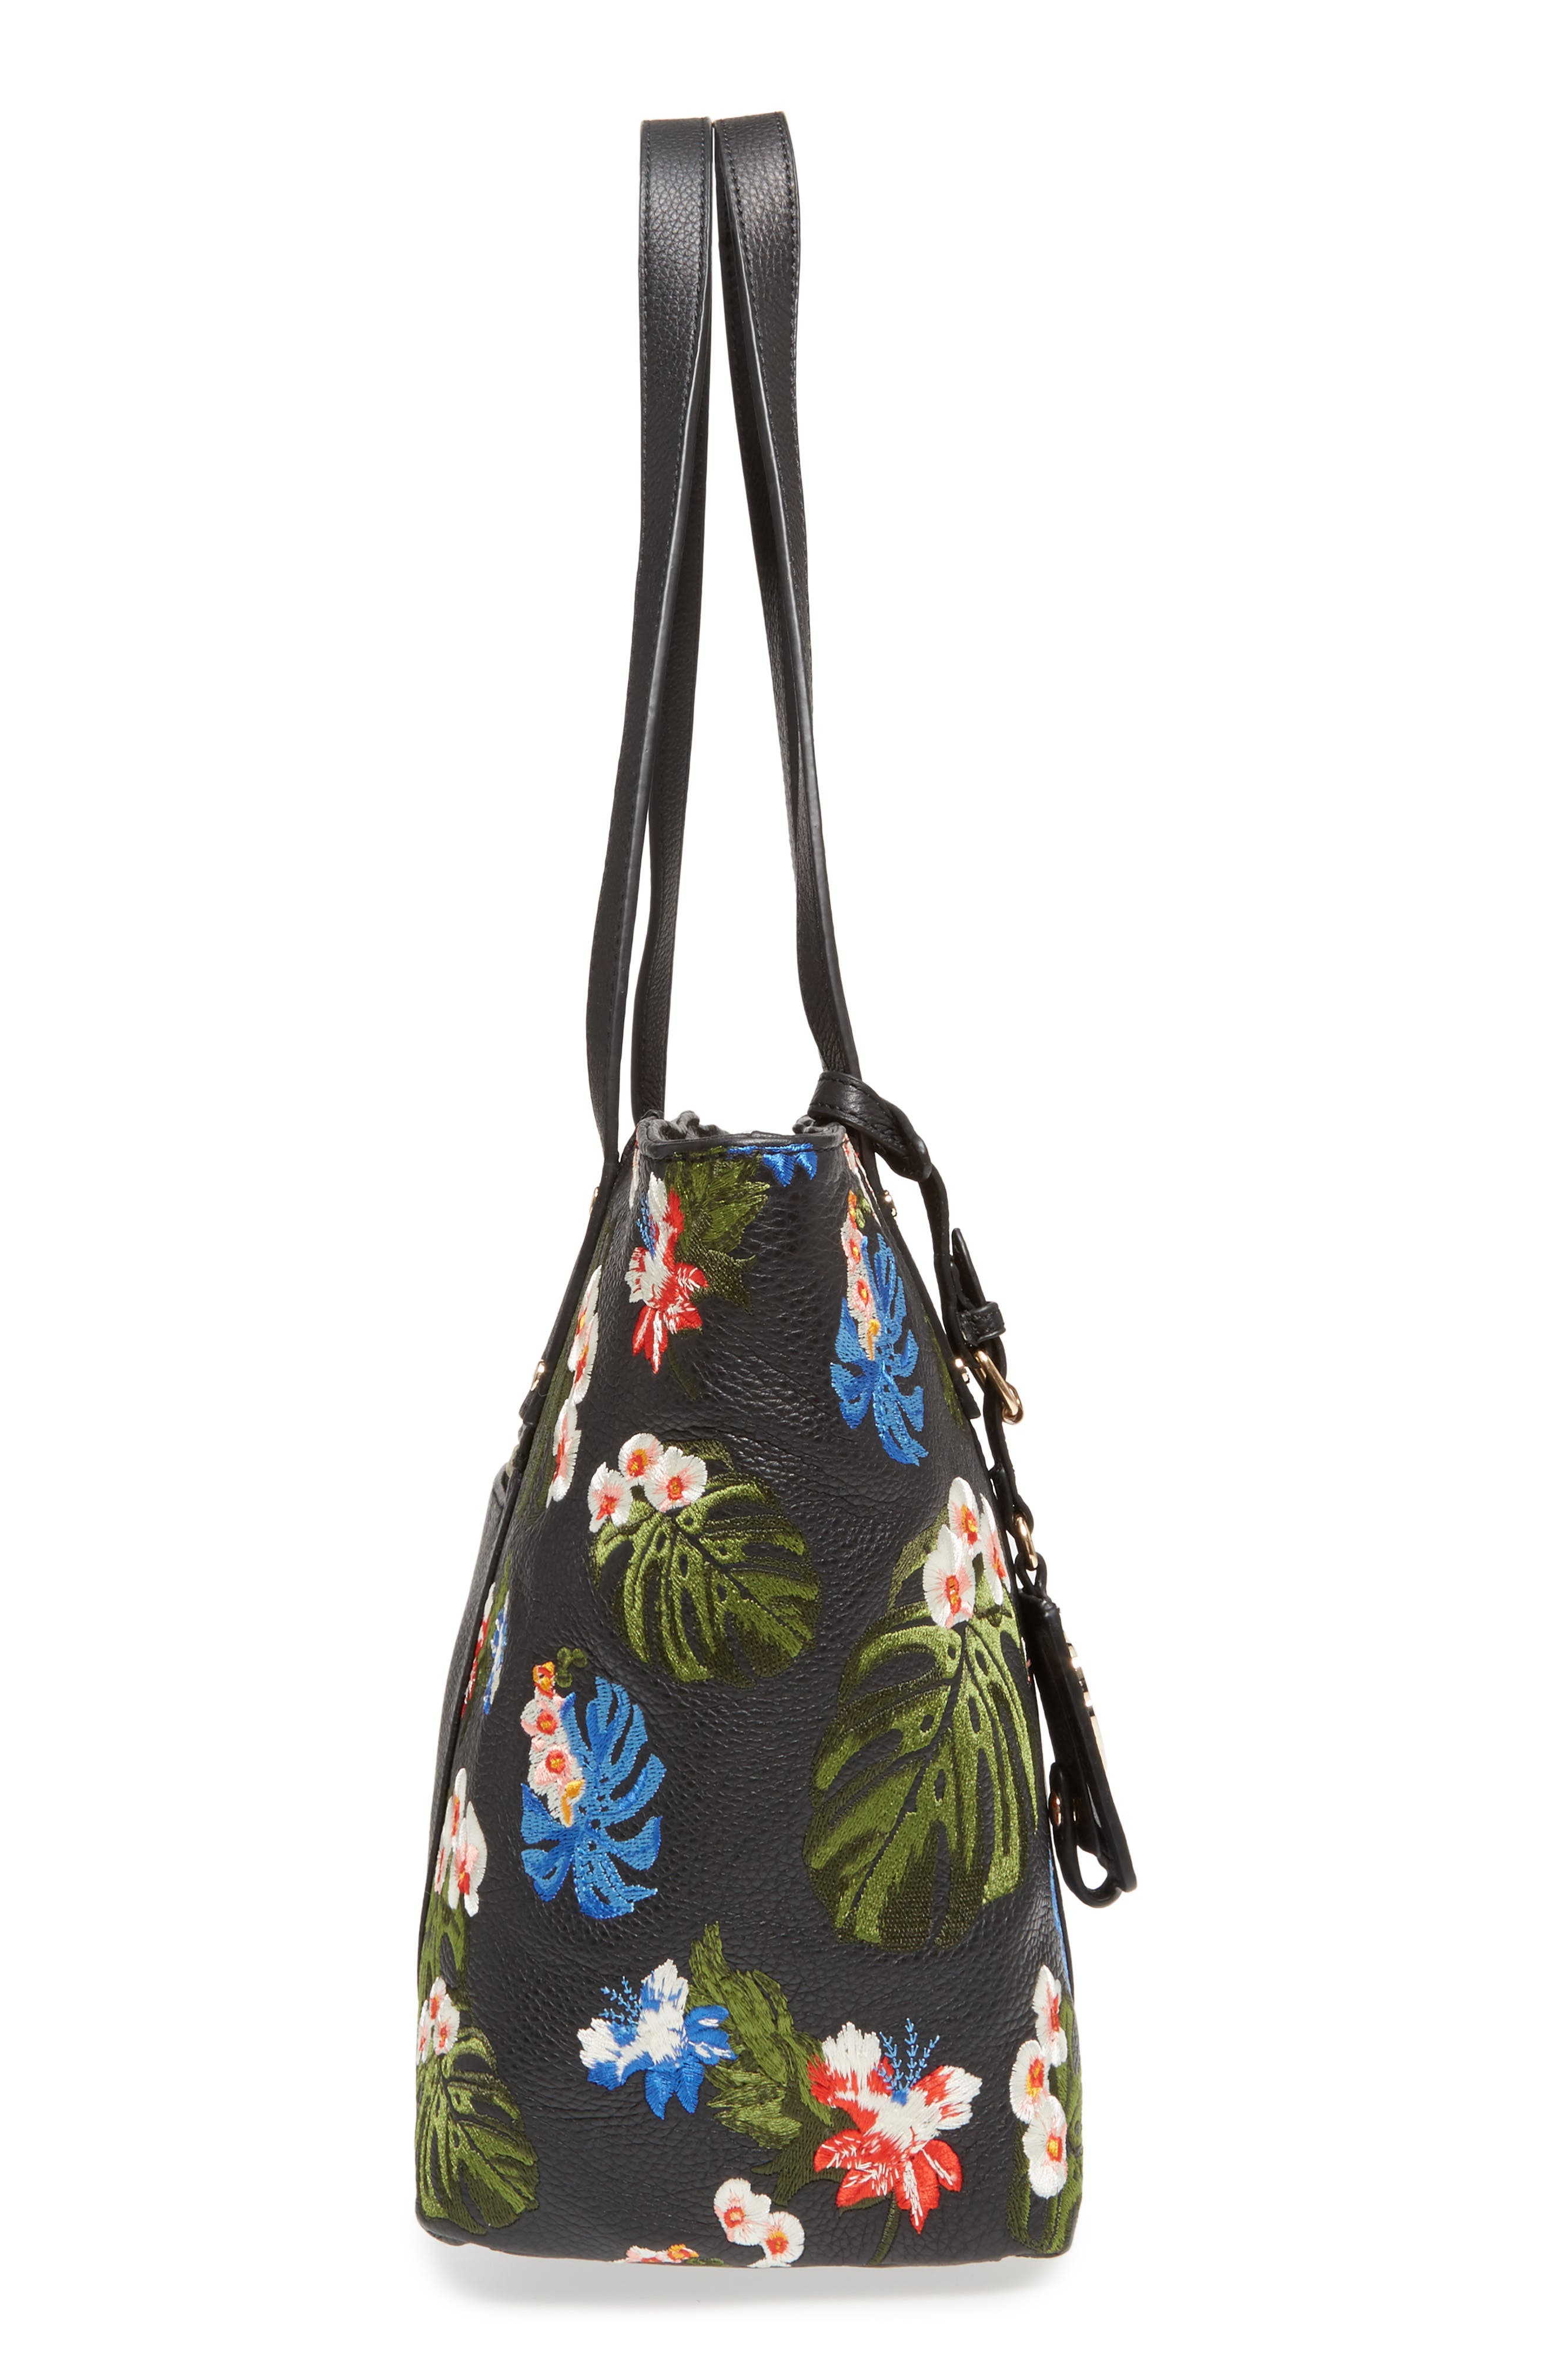 Cozumel Floral Embroidered Leather Tote,                             Alternate thumbnail 5, color,                             001